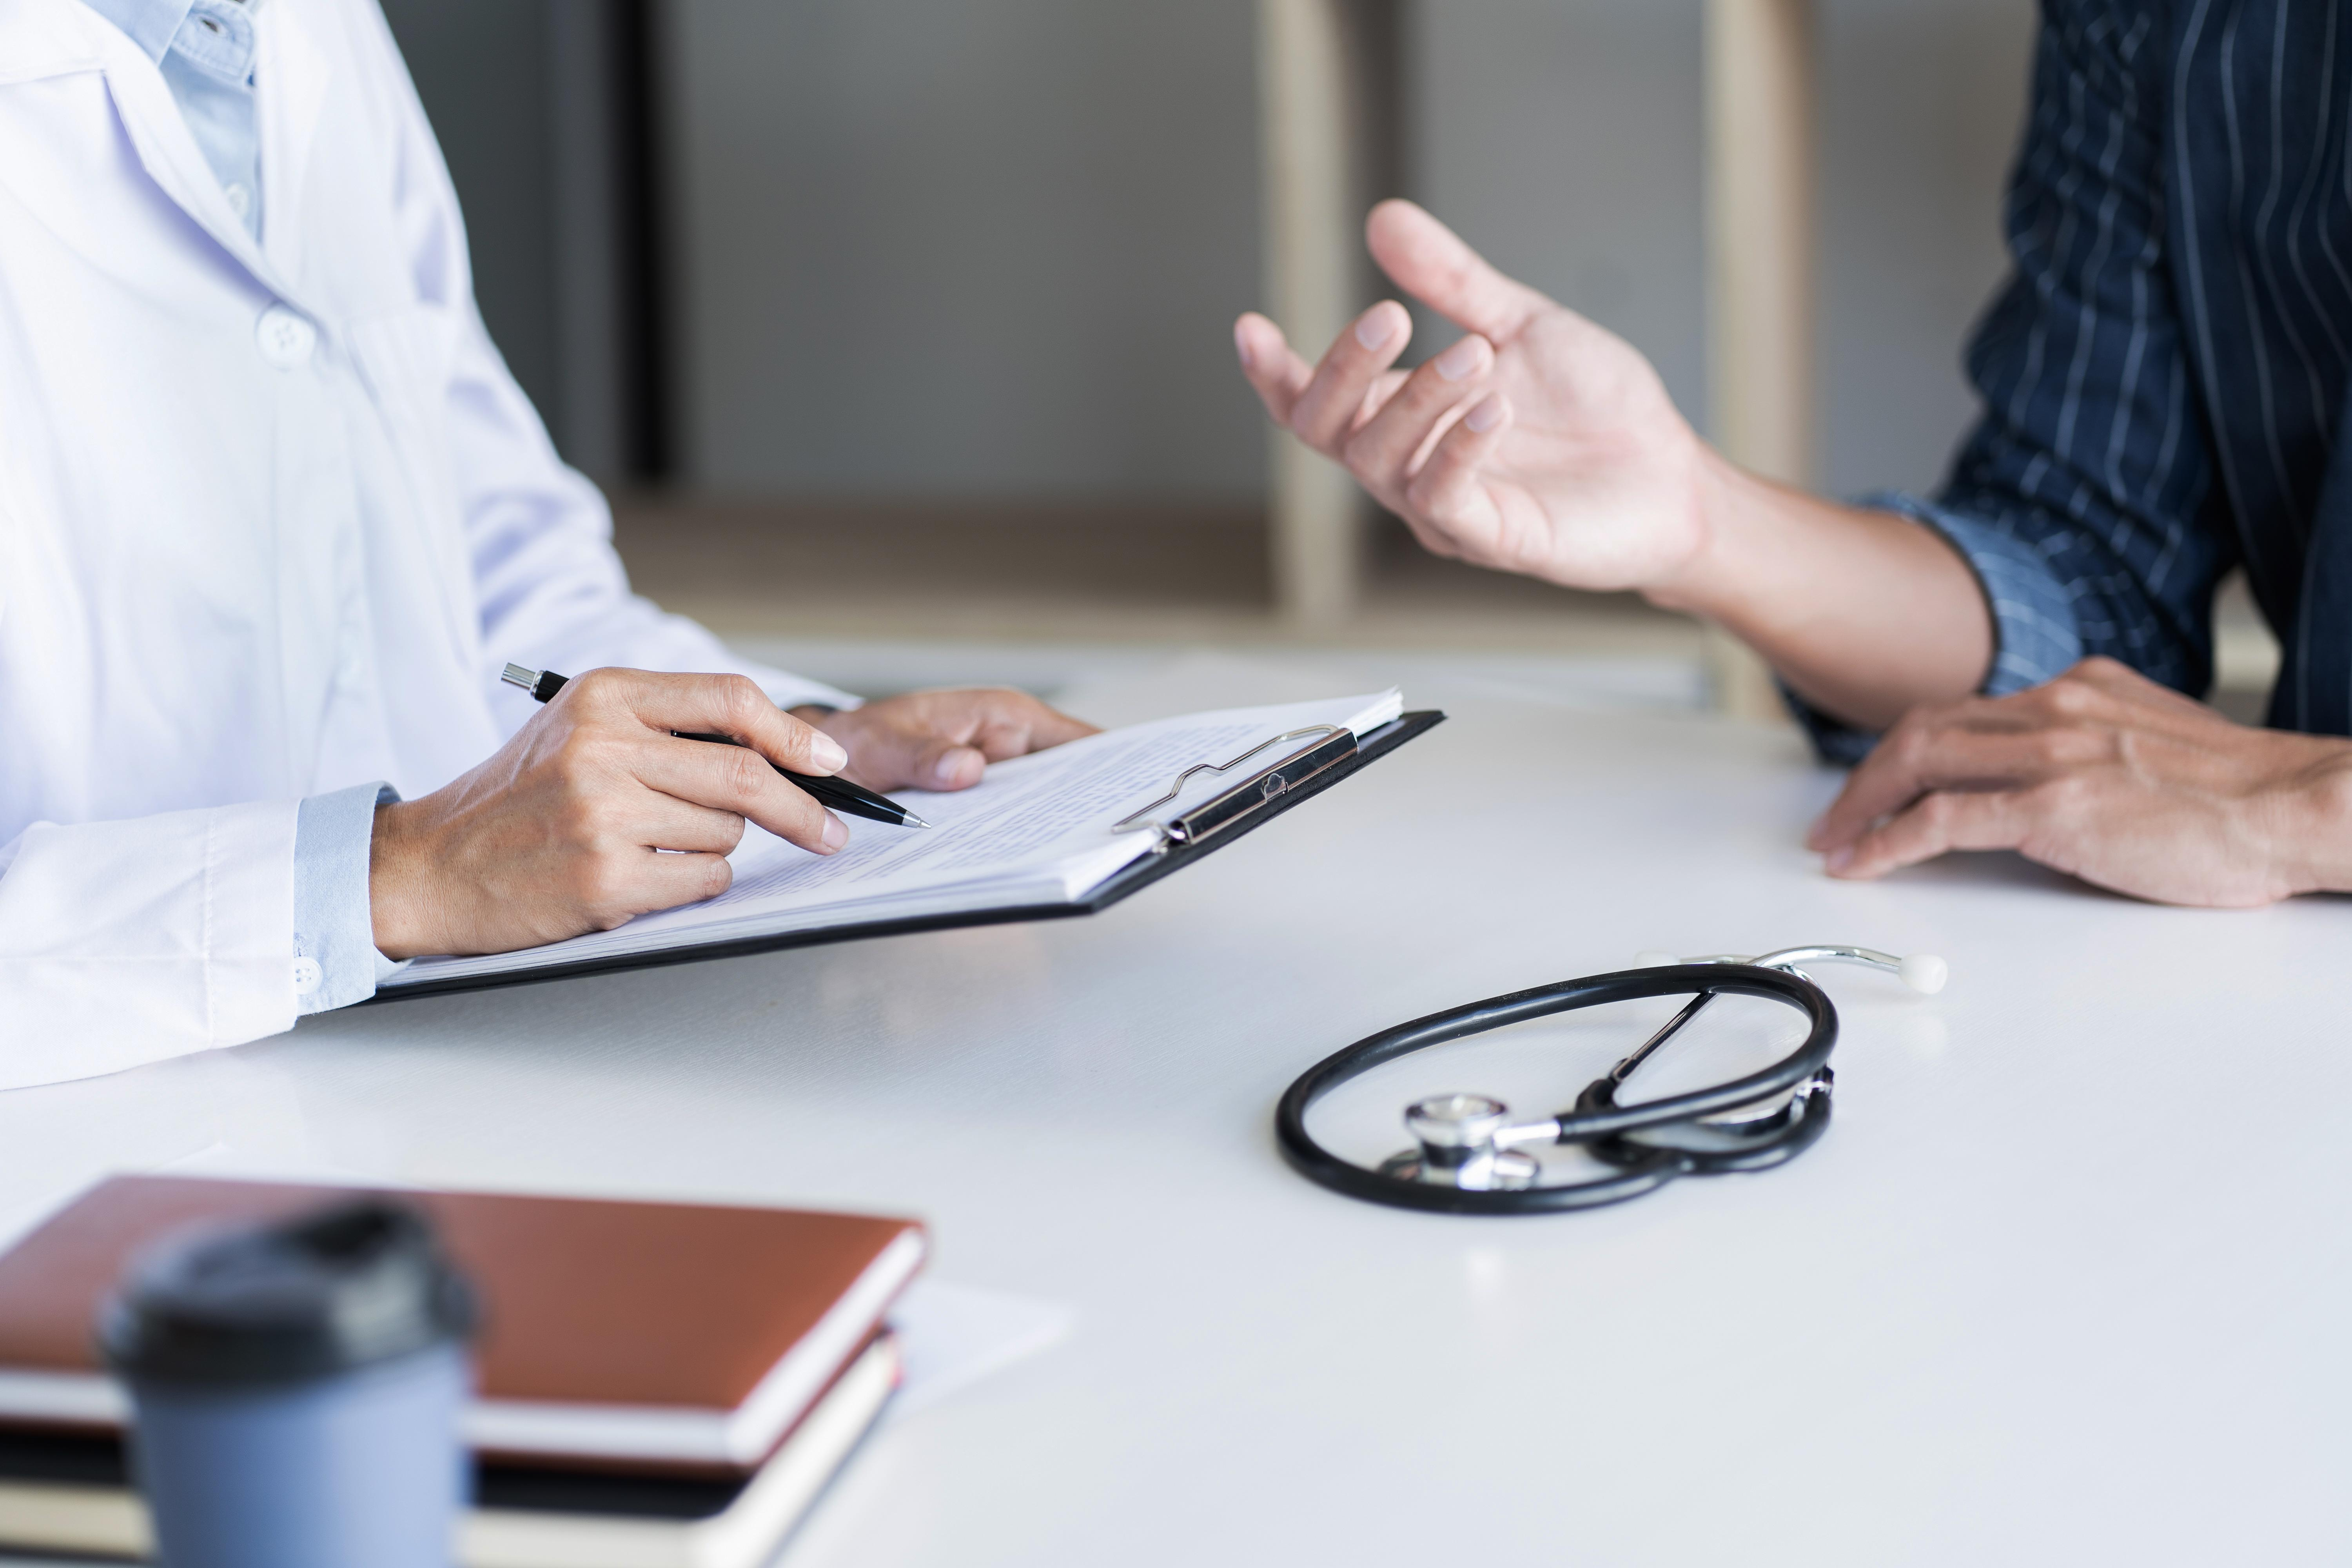 Doctor with patient in medical clinic or hospital.